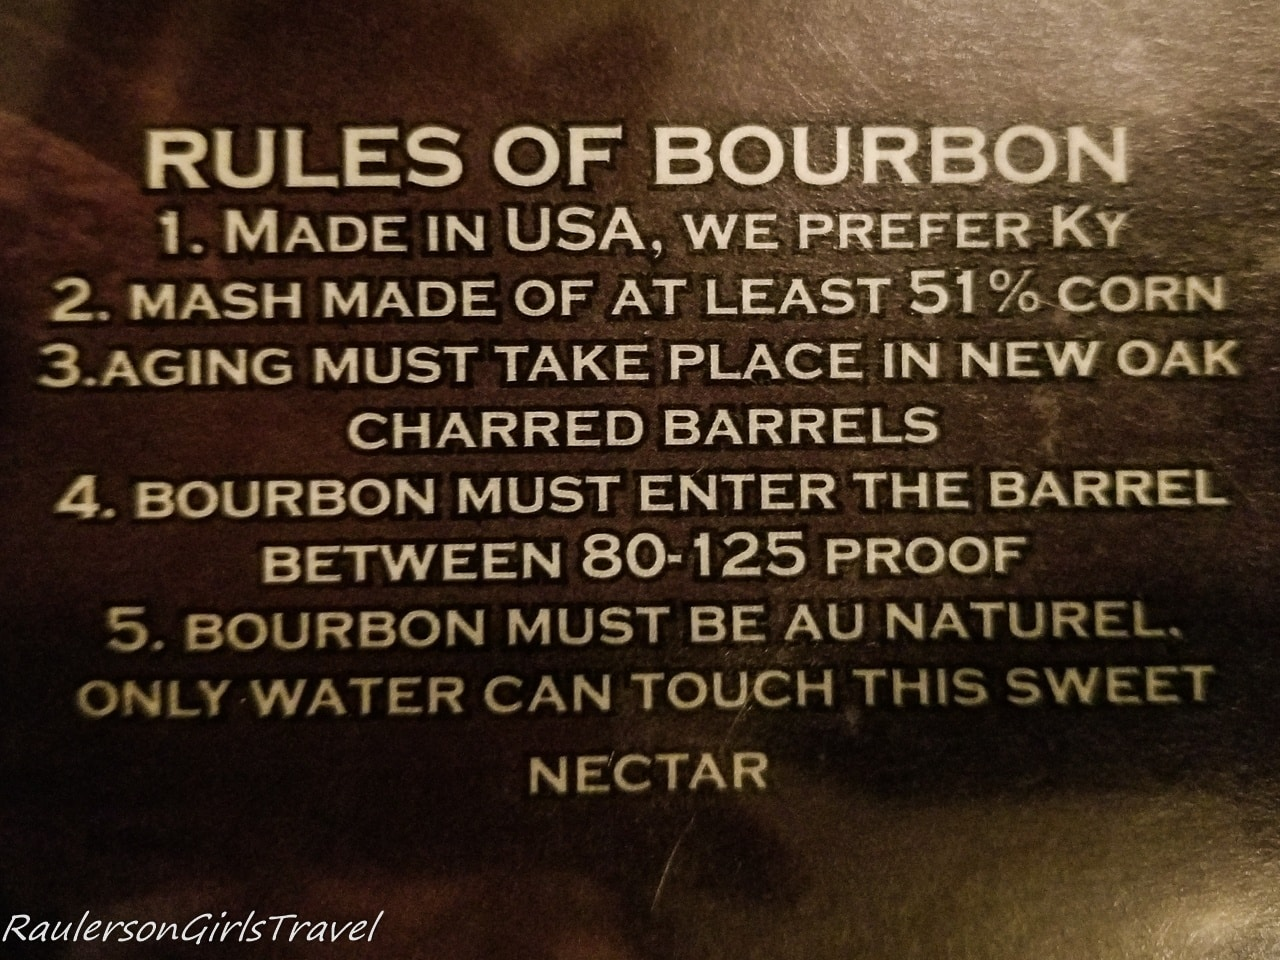 Rules of Bourbon